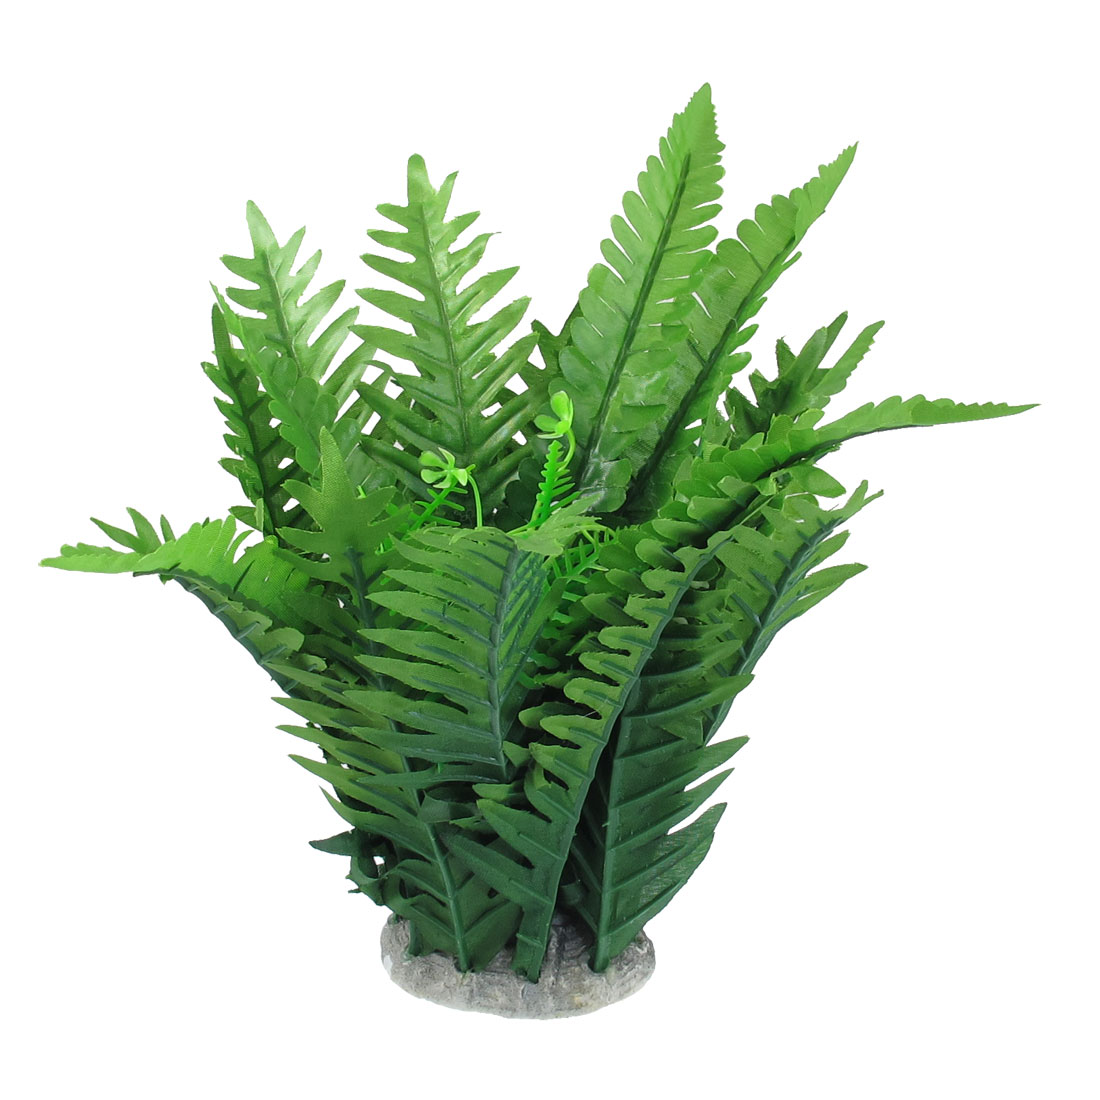 "10.4"" Height Green Manmade Aquarium Plastic Plant for Fish Tank"